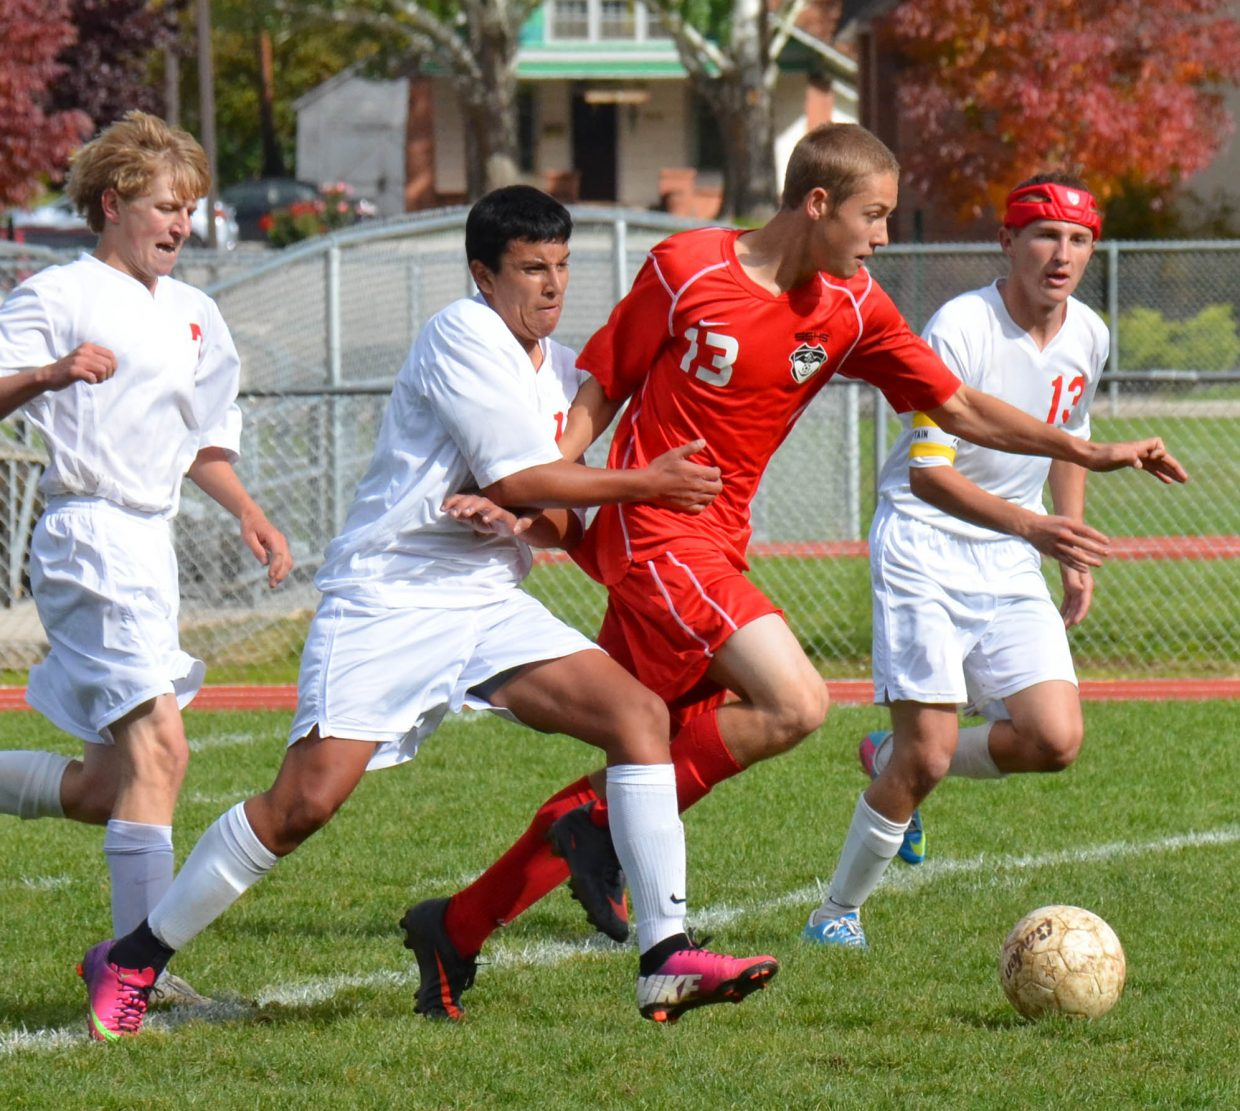 Carter Kounovsky pushes off defenders from Glenwood Springs in Saturday's 2-1 victory for the Sailors.